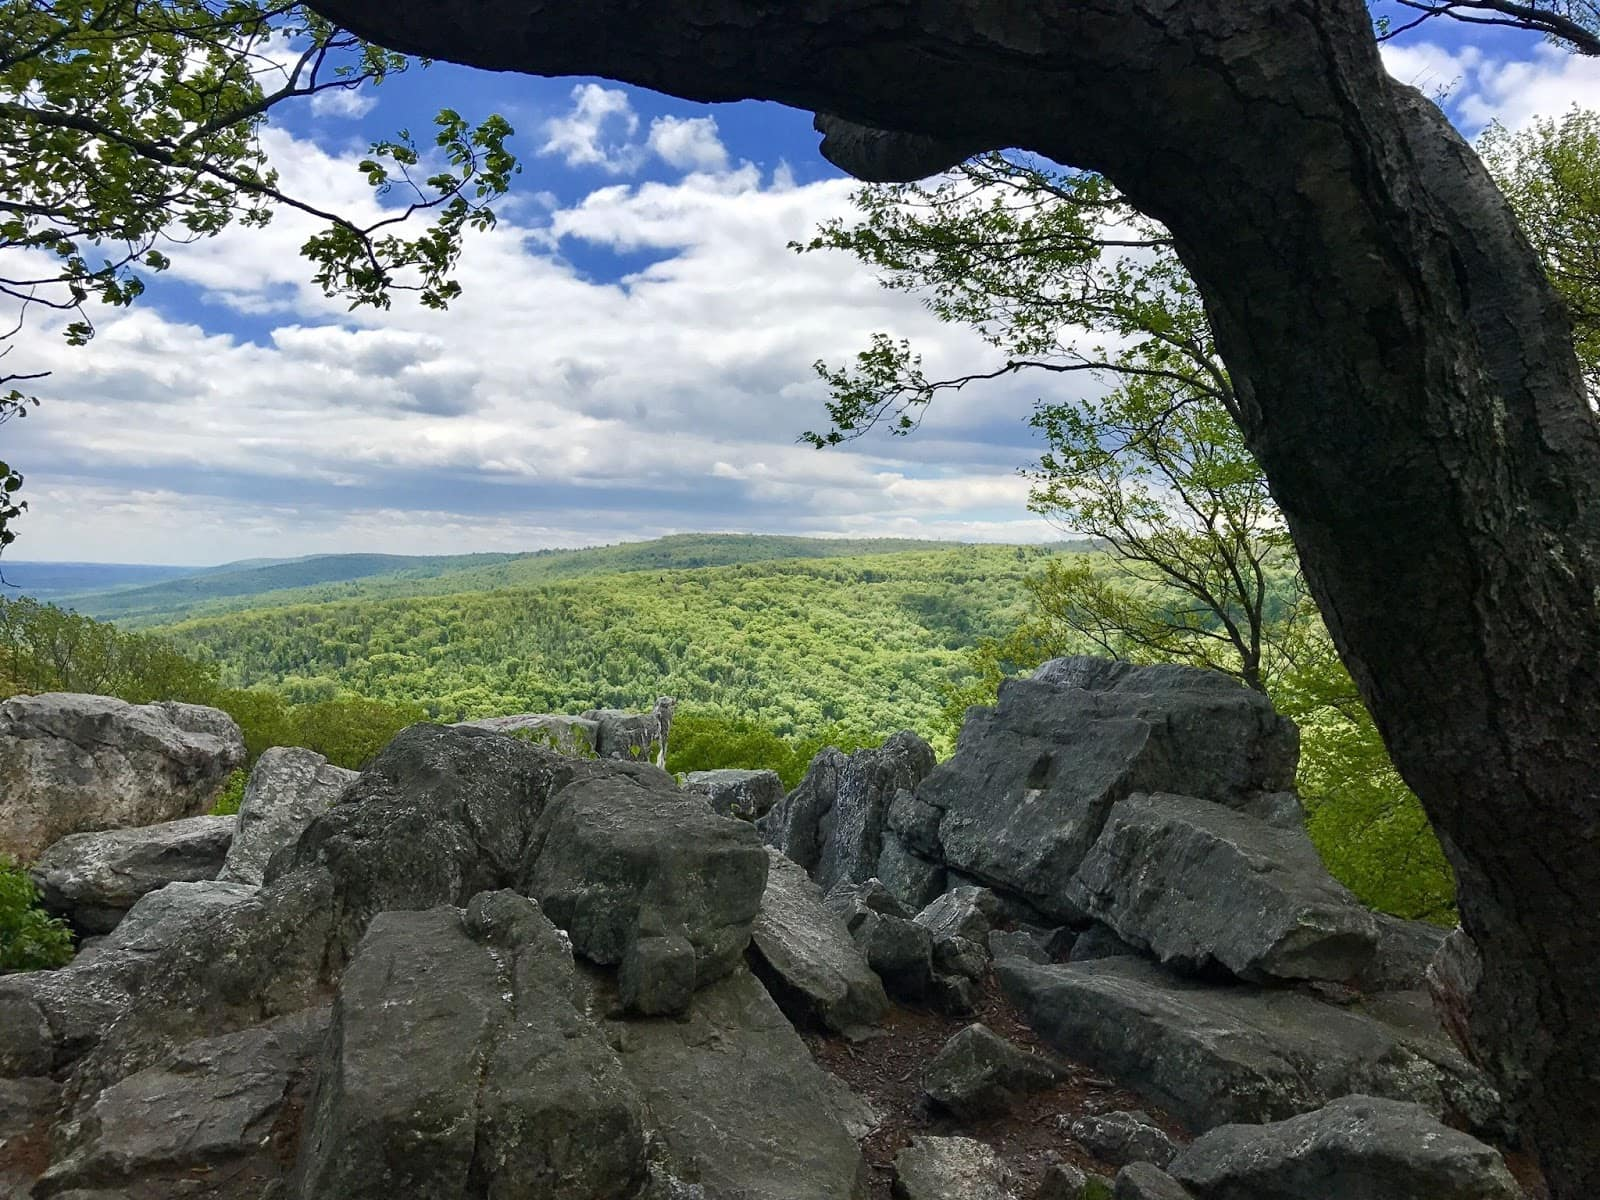 Catoctin Mountain // Looking for the best hikes in Maryland? Here are our 7 favorite Maryland trails including distances, descriptions, and local tips.